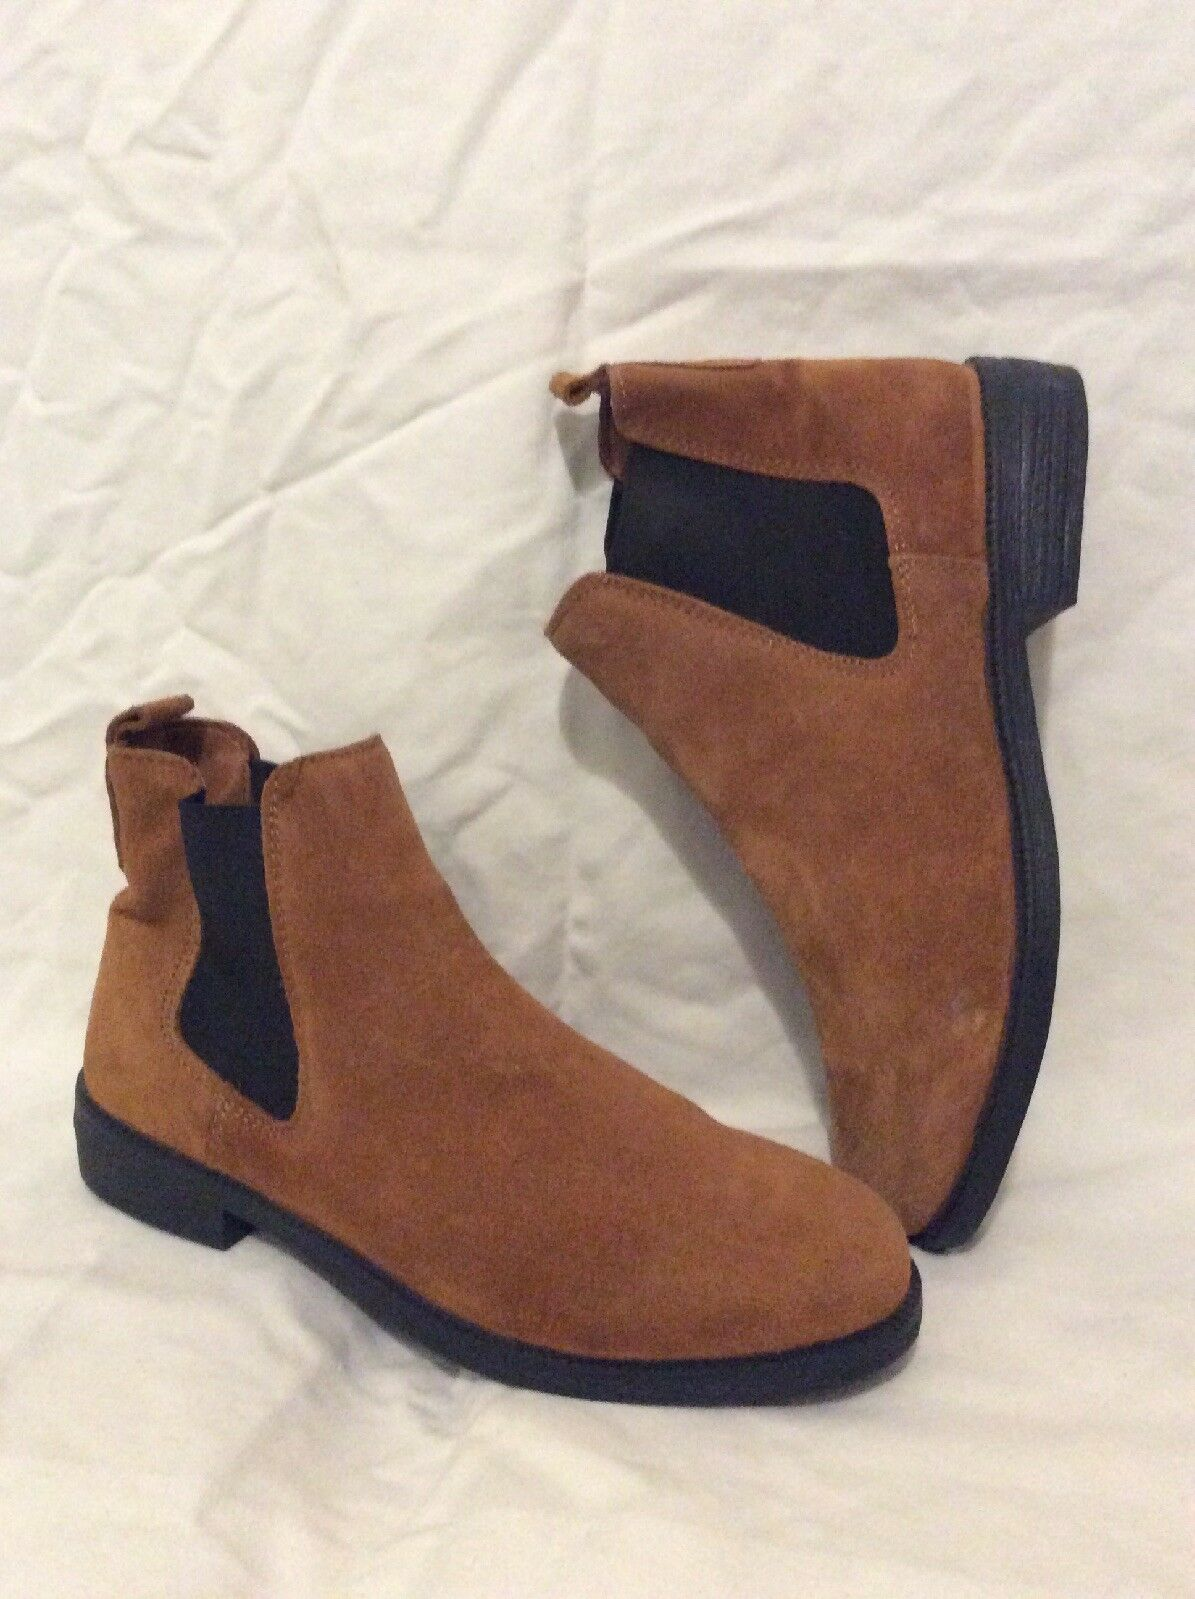 River Island Brown Ankle Suede Boots Size 5